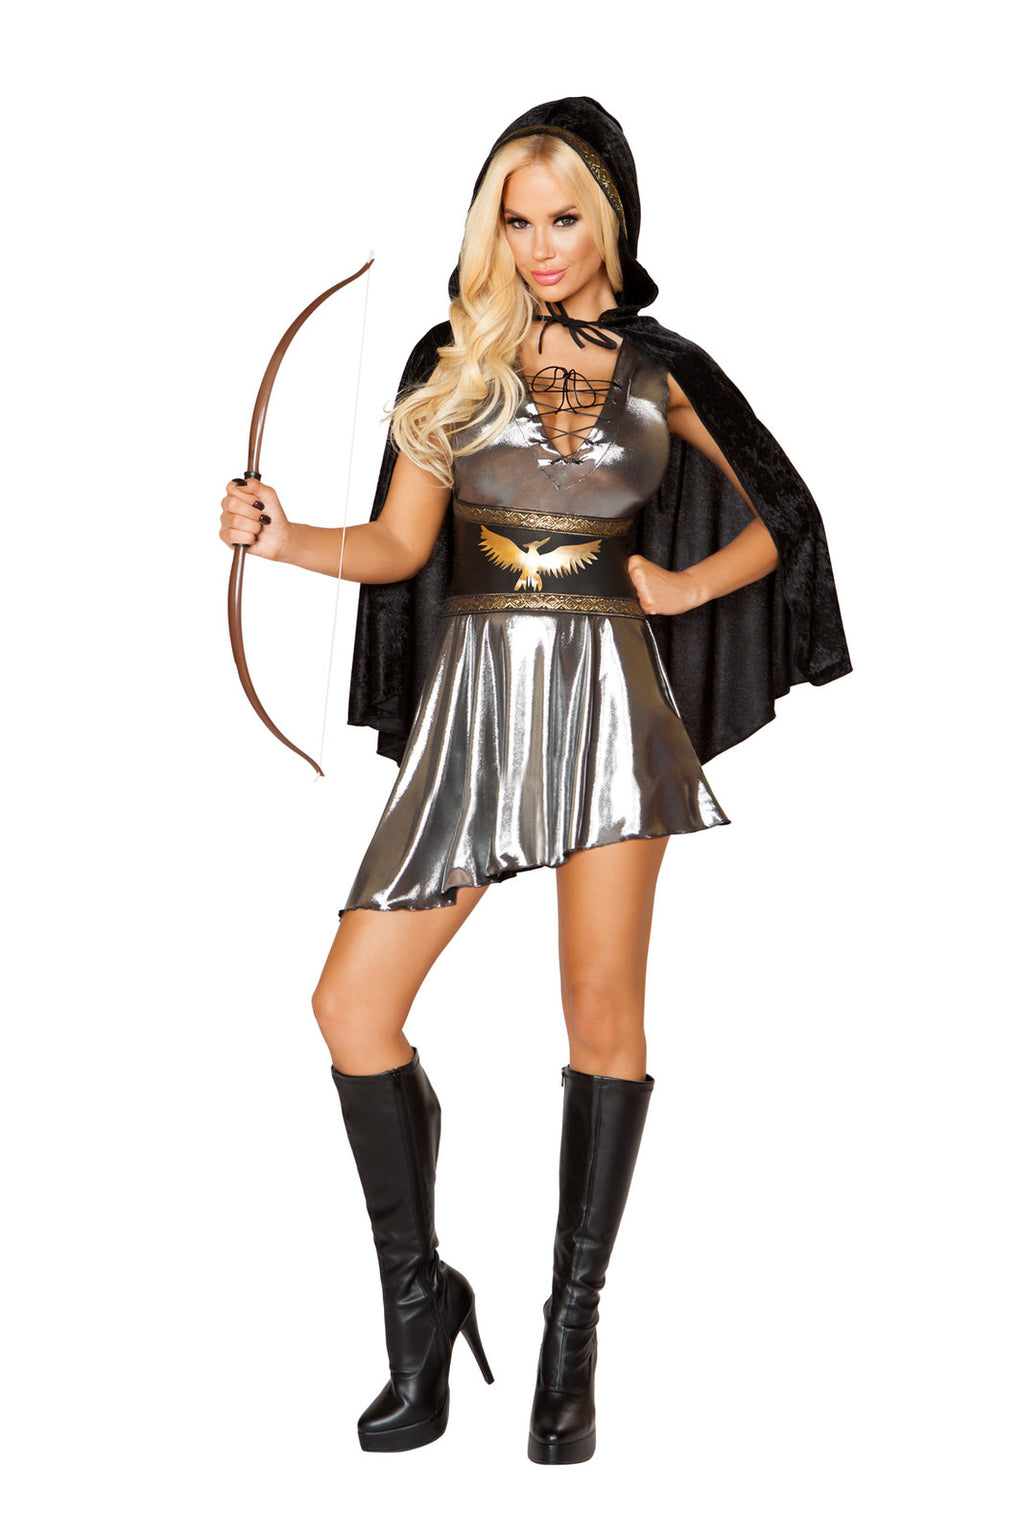 3-PC-Games-Archer-Silver-Lace-Up-Cincher-Dress-&-Black-Hooded-Cape-Party-Costume